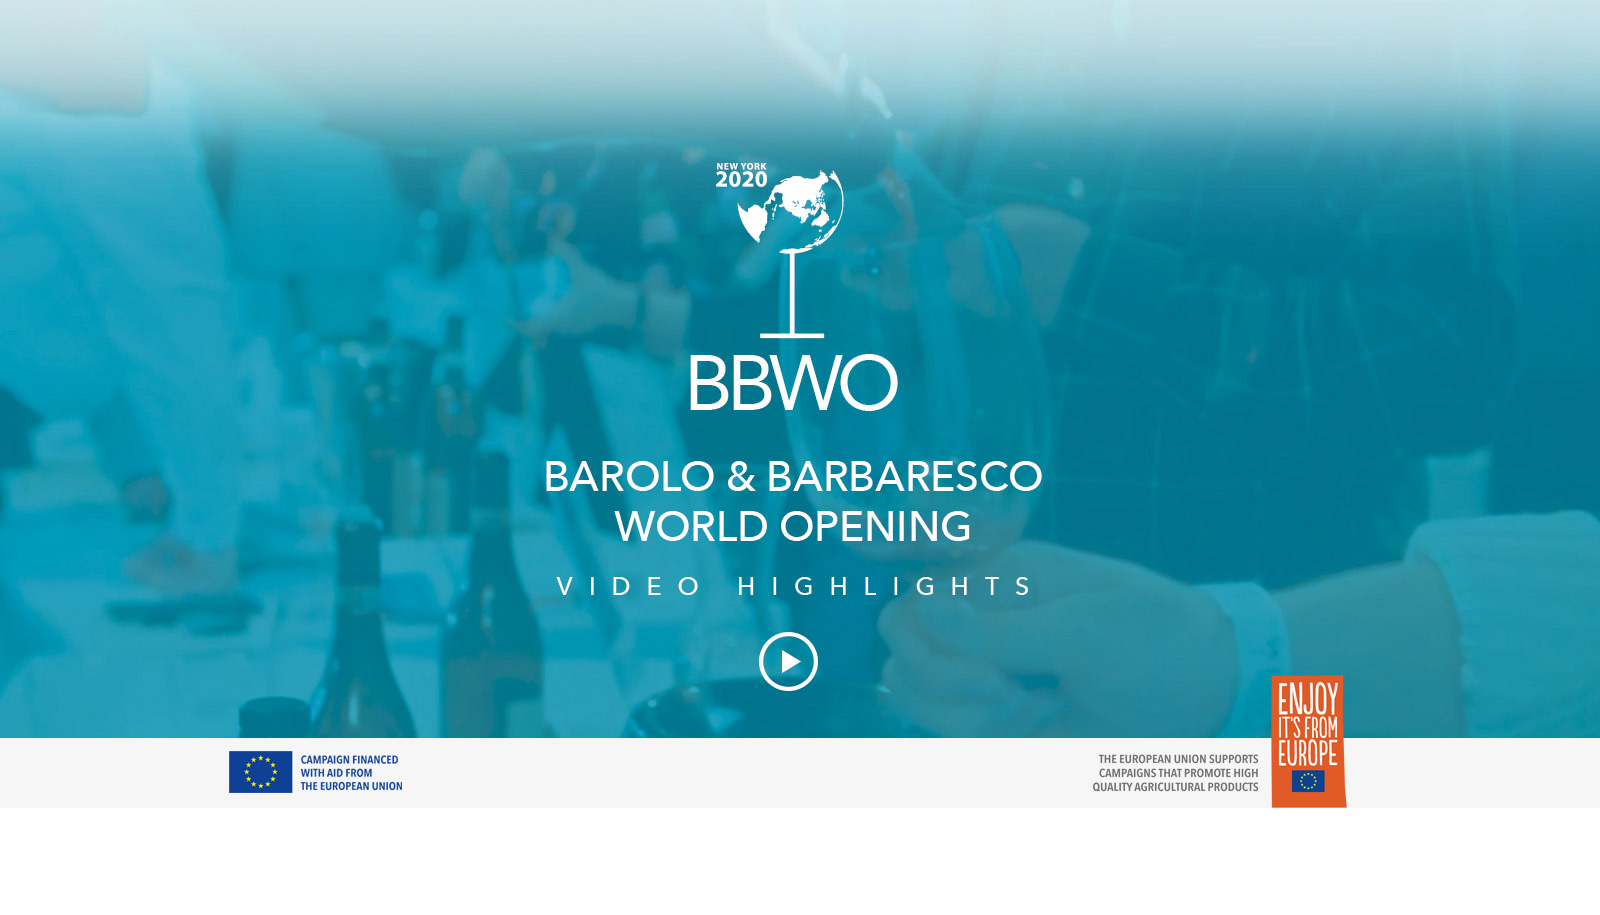 Barolo & Barbaresco World Opening Video Highlights